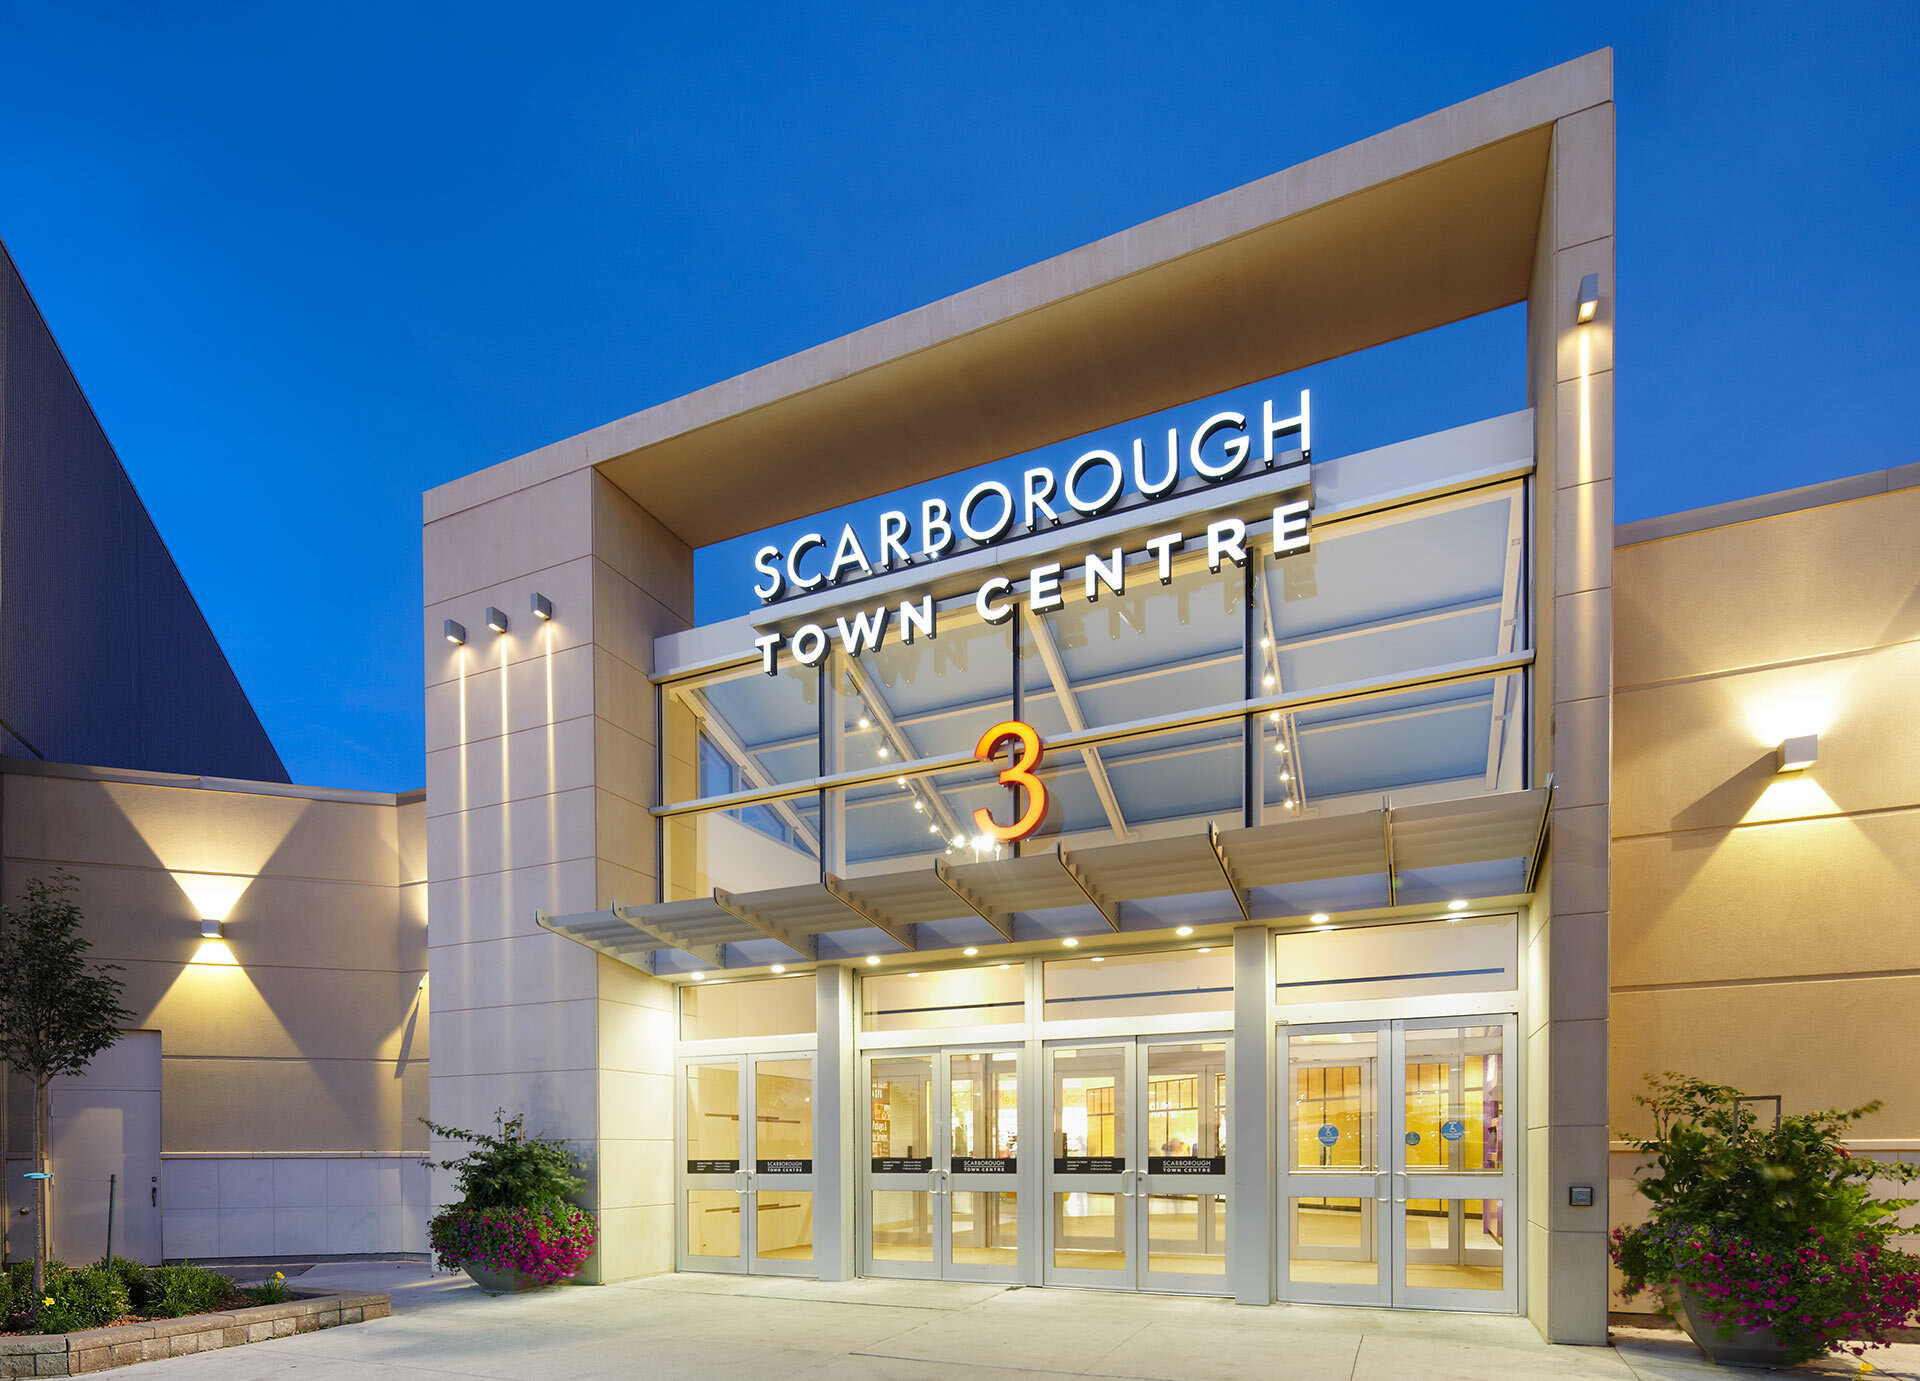 SCARBOROUGH TOWN CENTRE